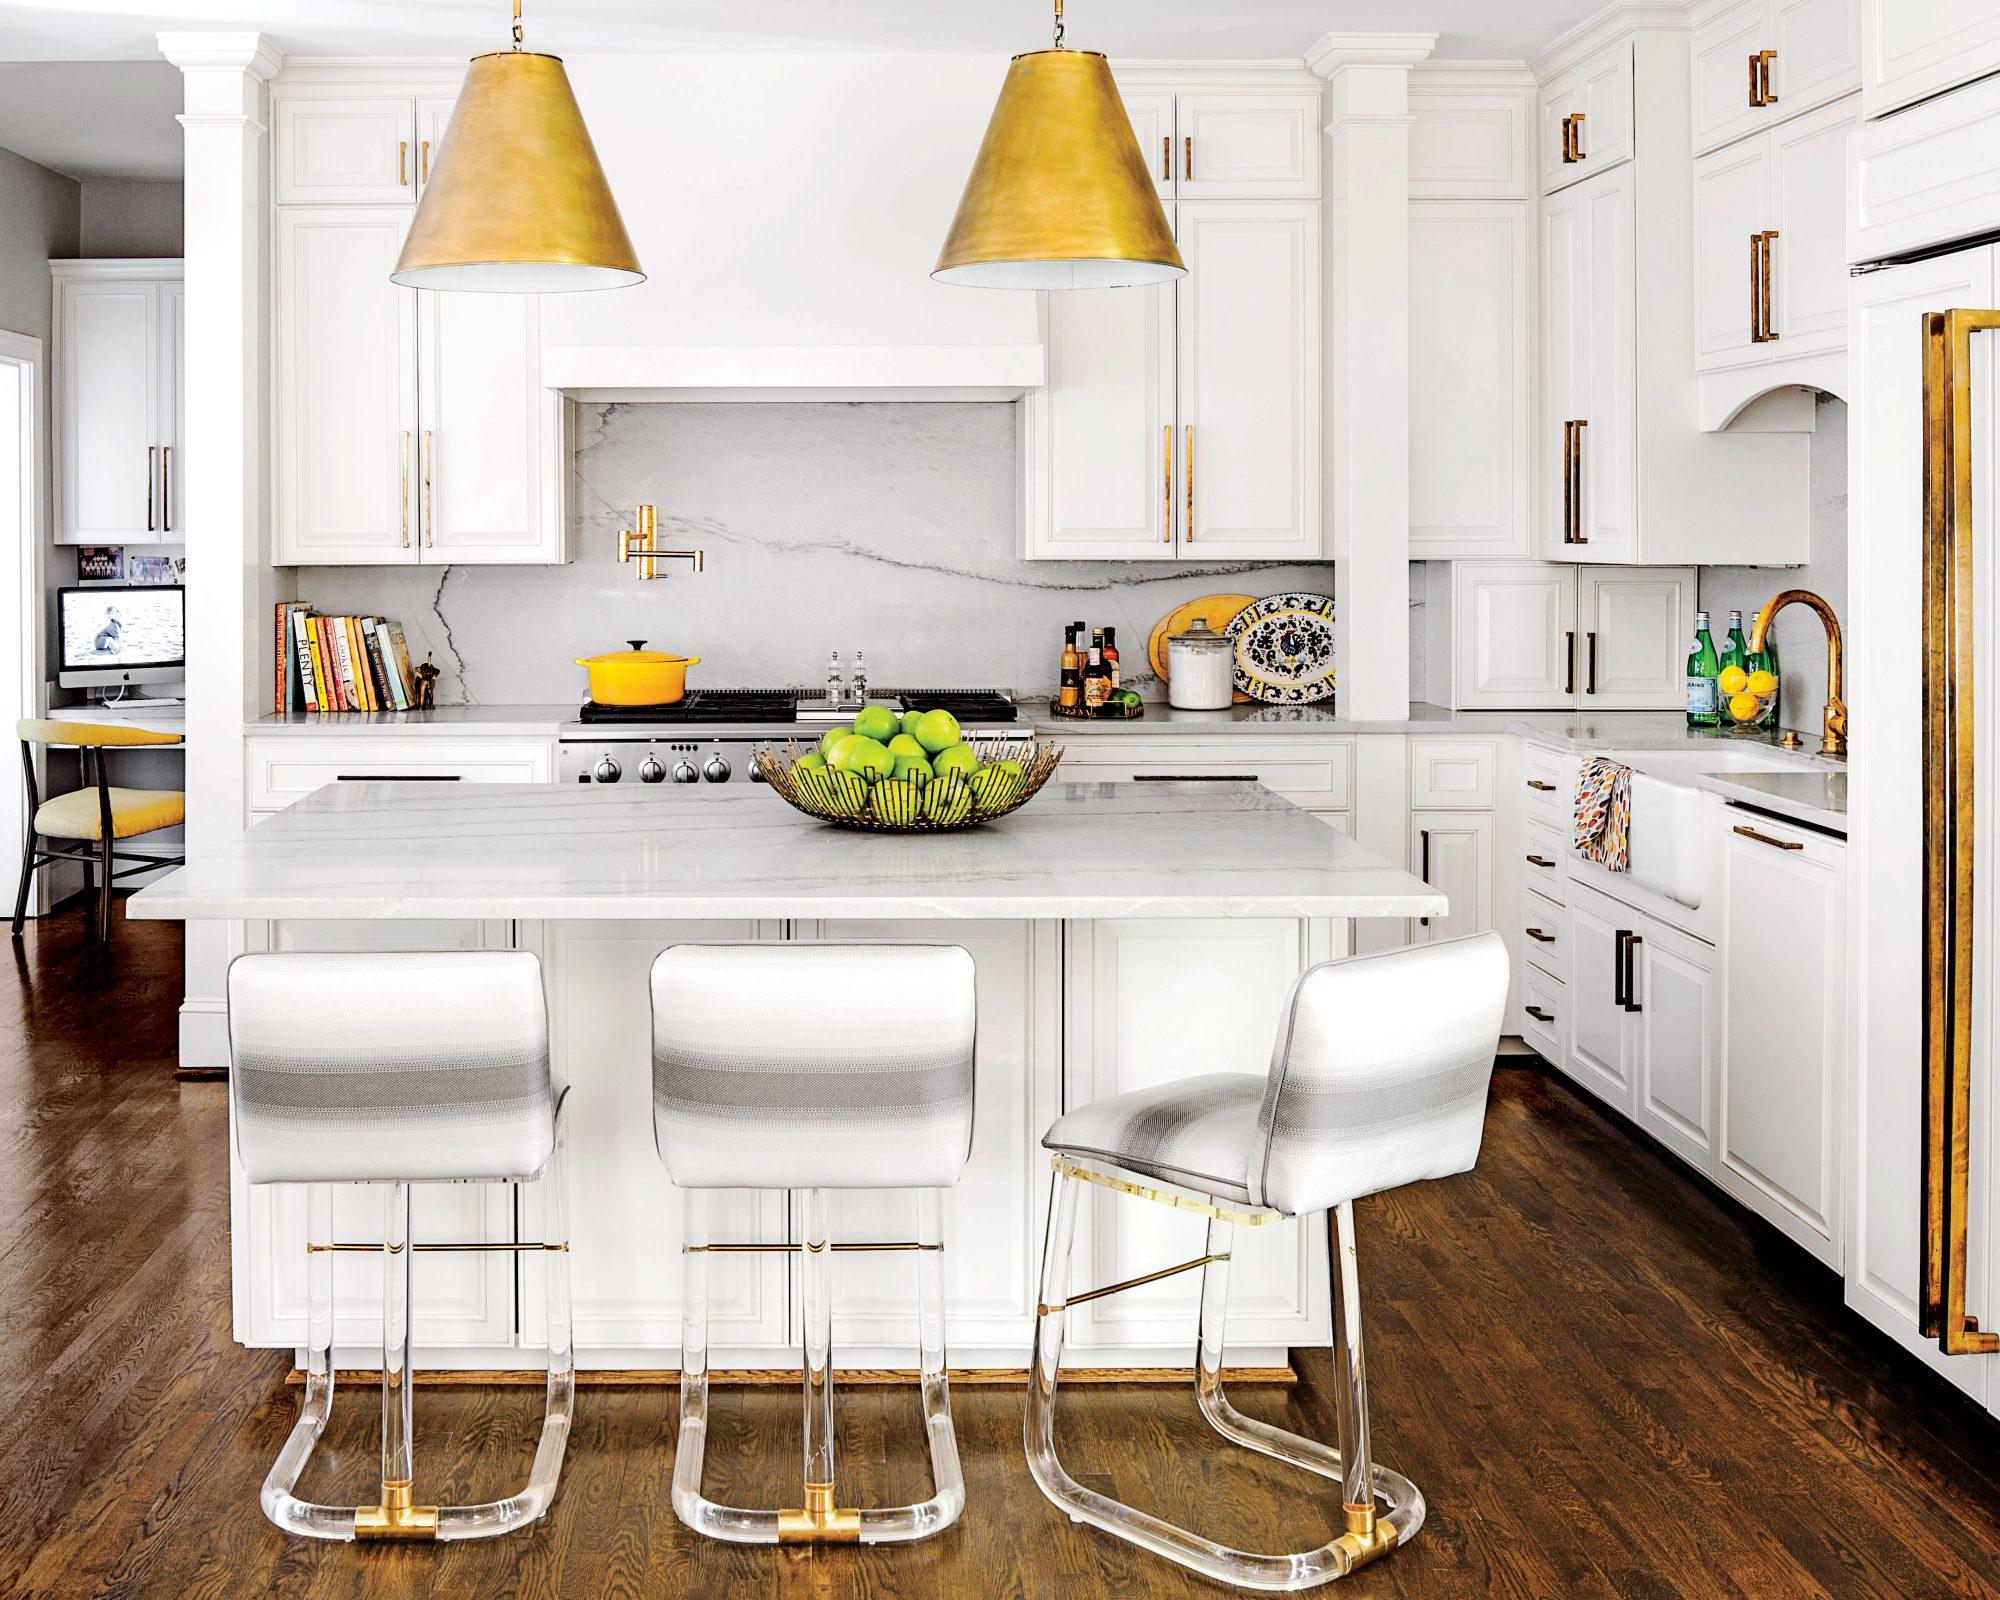 Beach inspired kitchen ideas southern living for Southern living kitchen designs